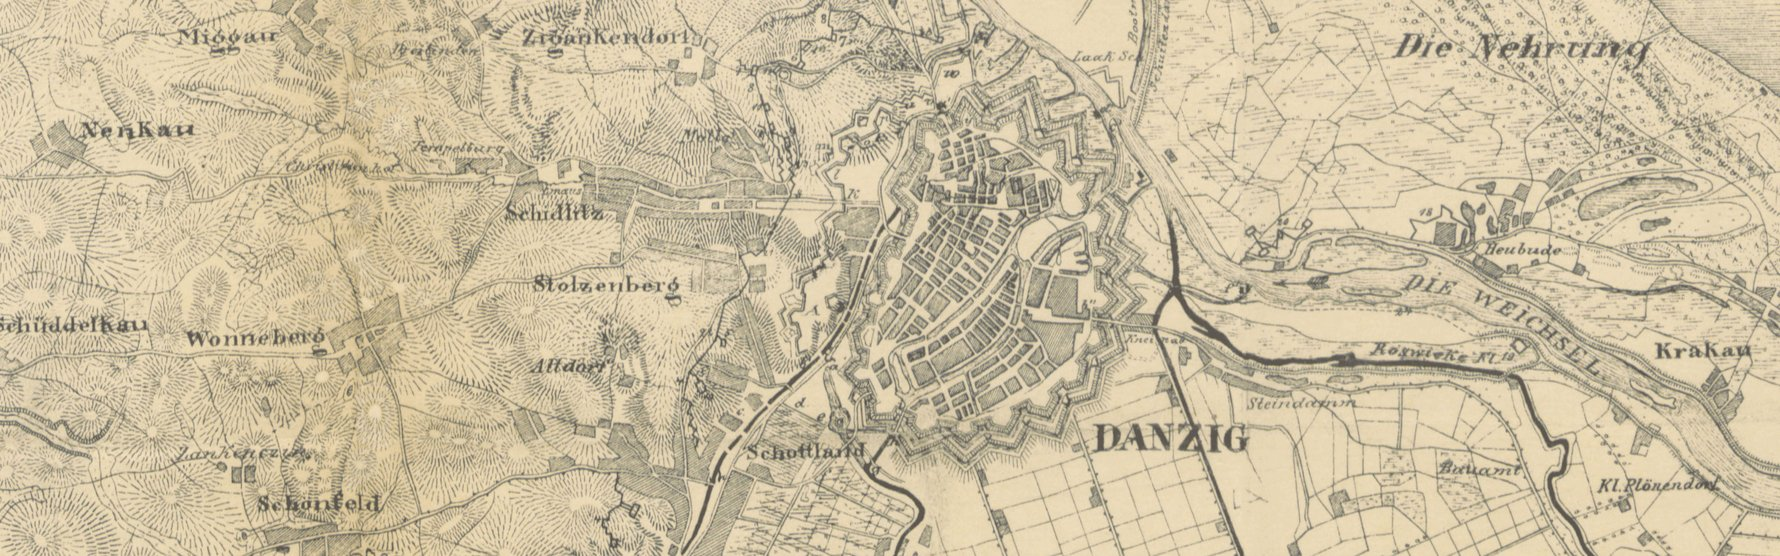 Map of Danzig, 1814